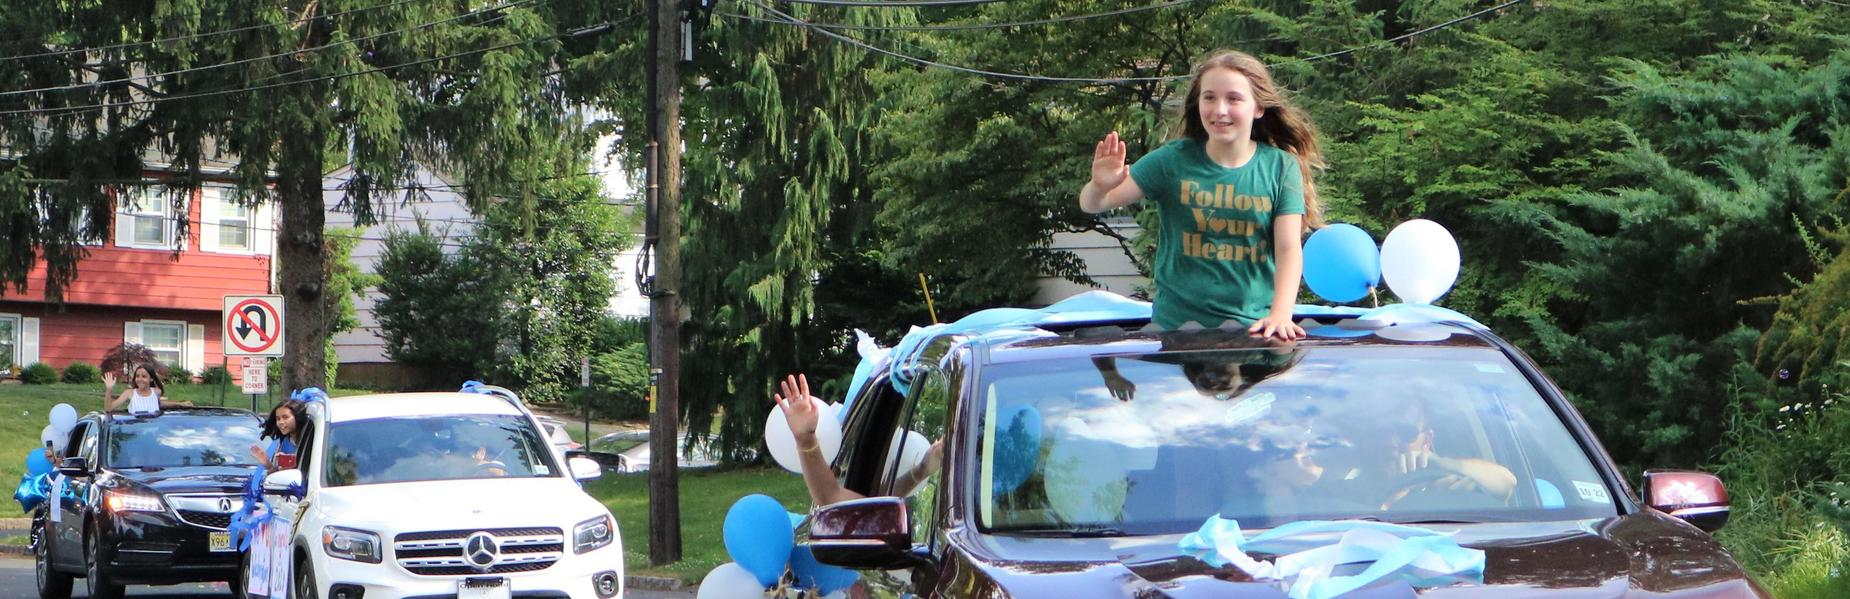 Photo of Washington 5th graders waving during Grade 5 Clap Out Car Parade.